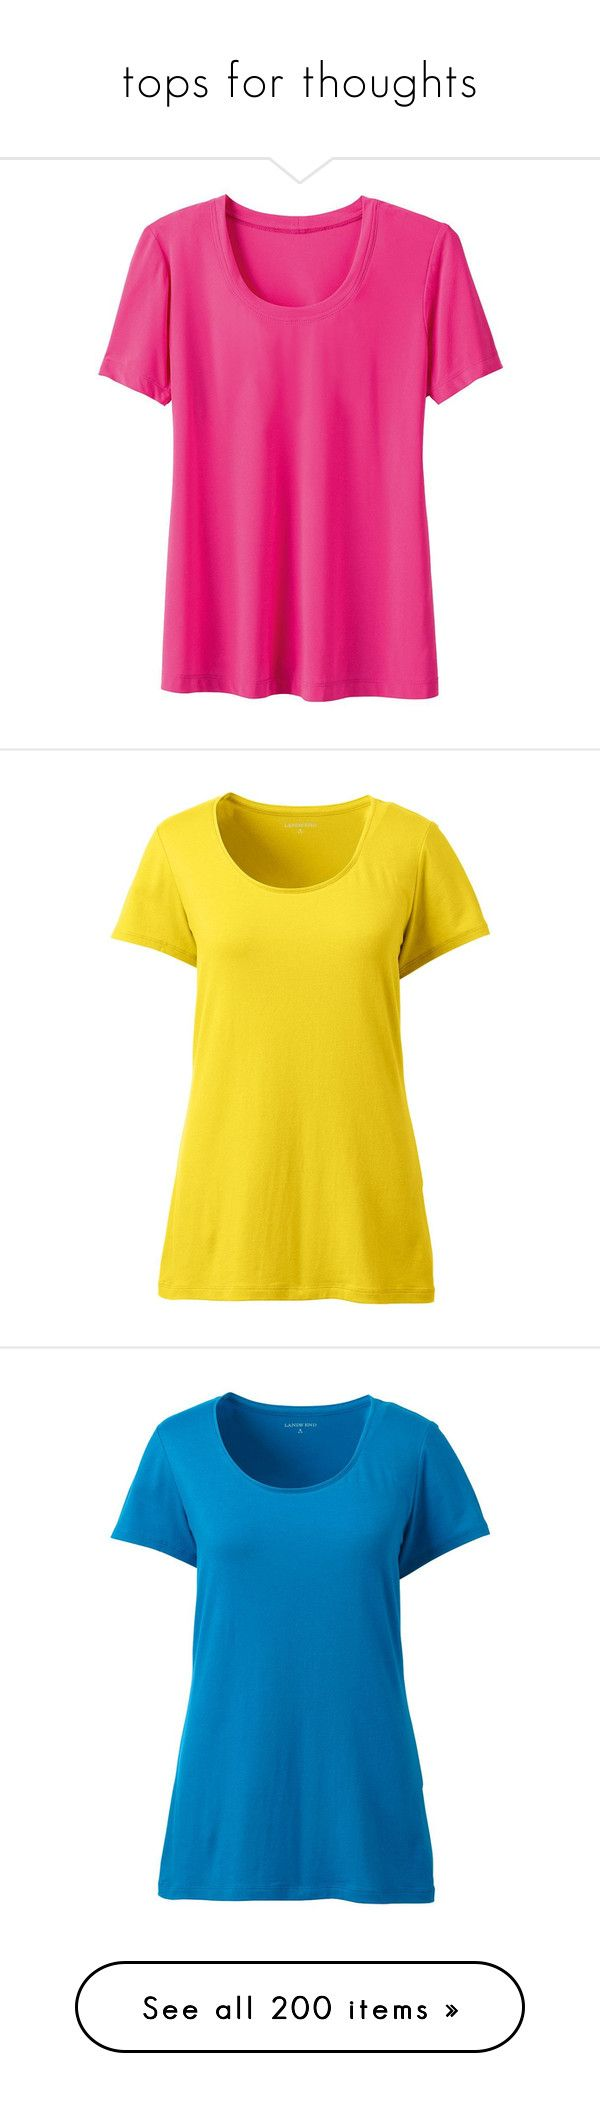 """tops for thoughts"" by tinkertot ❤ liked on Polyvore featuring tops, t-shirts, shirts, fuchsia rose, tee-shirt, scoop neck t shirt, women's plus size shirts, plus size short sleeve shirts, scoop neck tee and yellow"